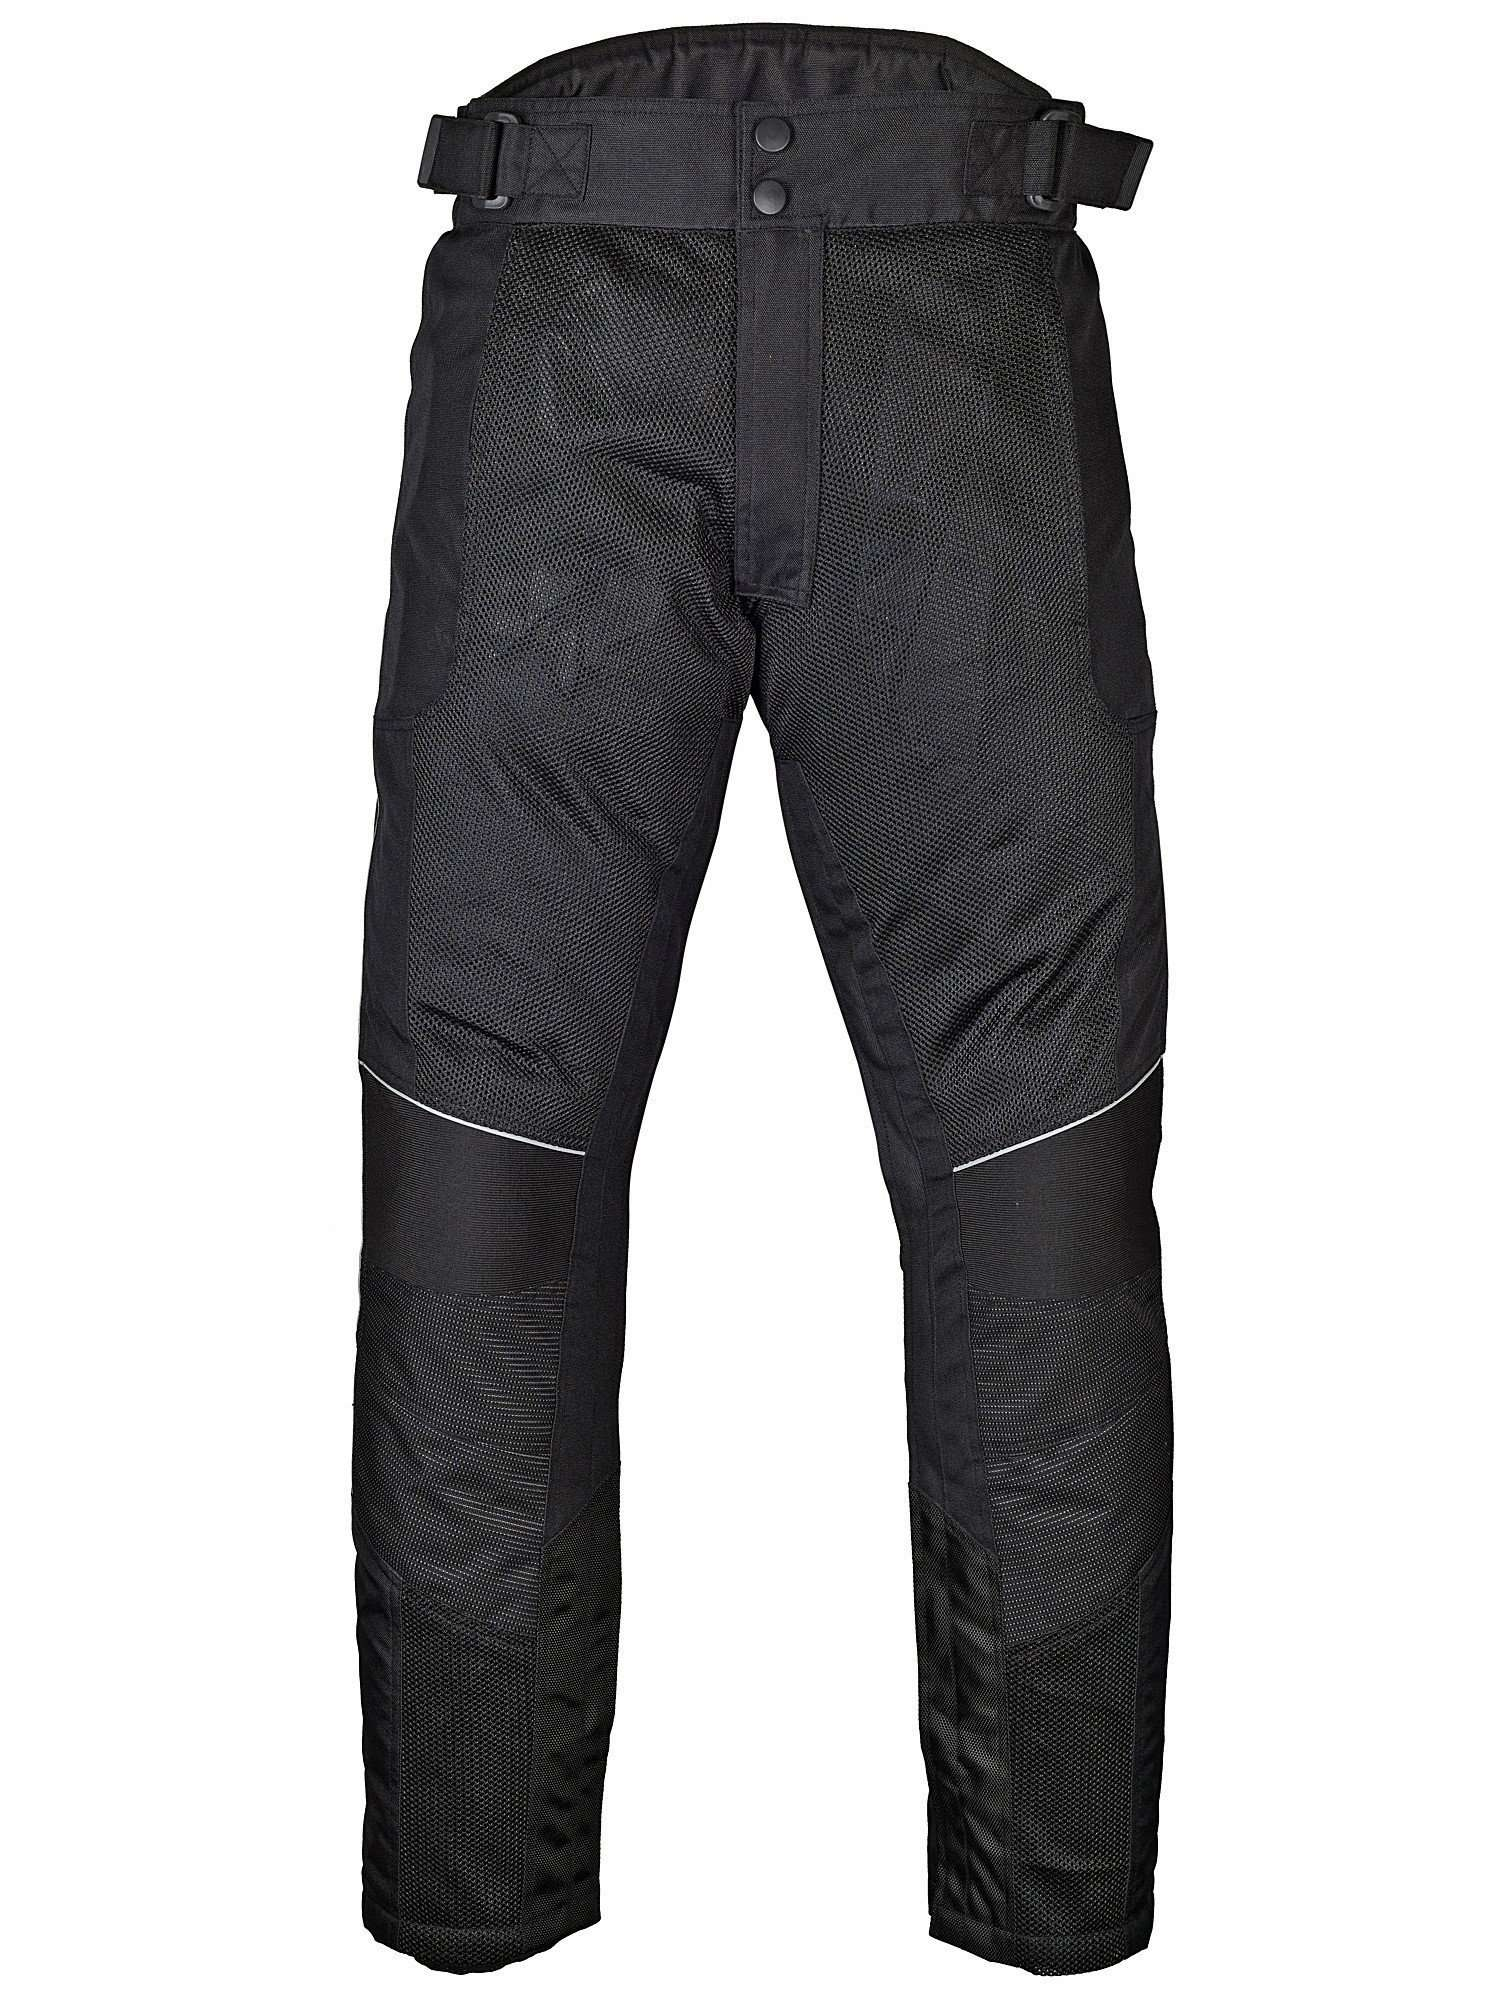 Mens-Motorcycle-Mesh-Pants-Full-Leg-Zipper-Black